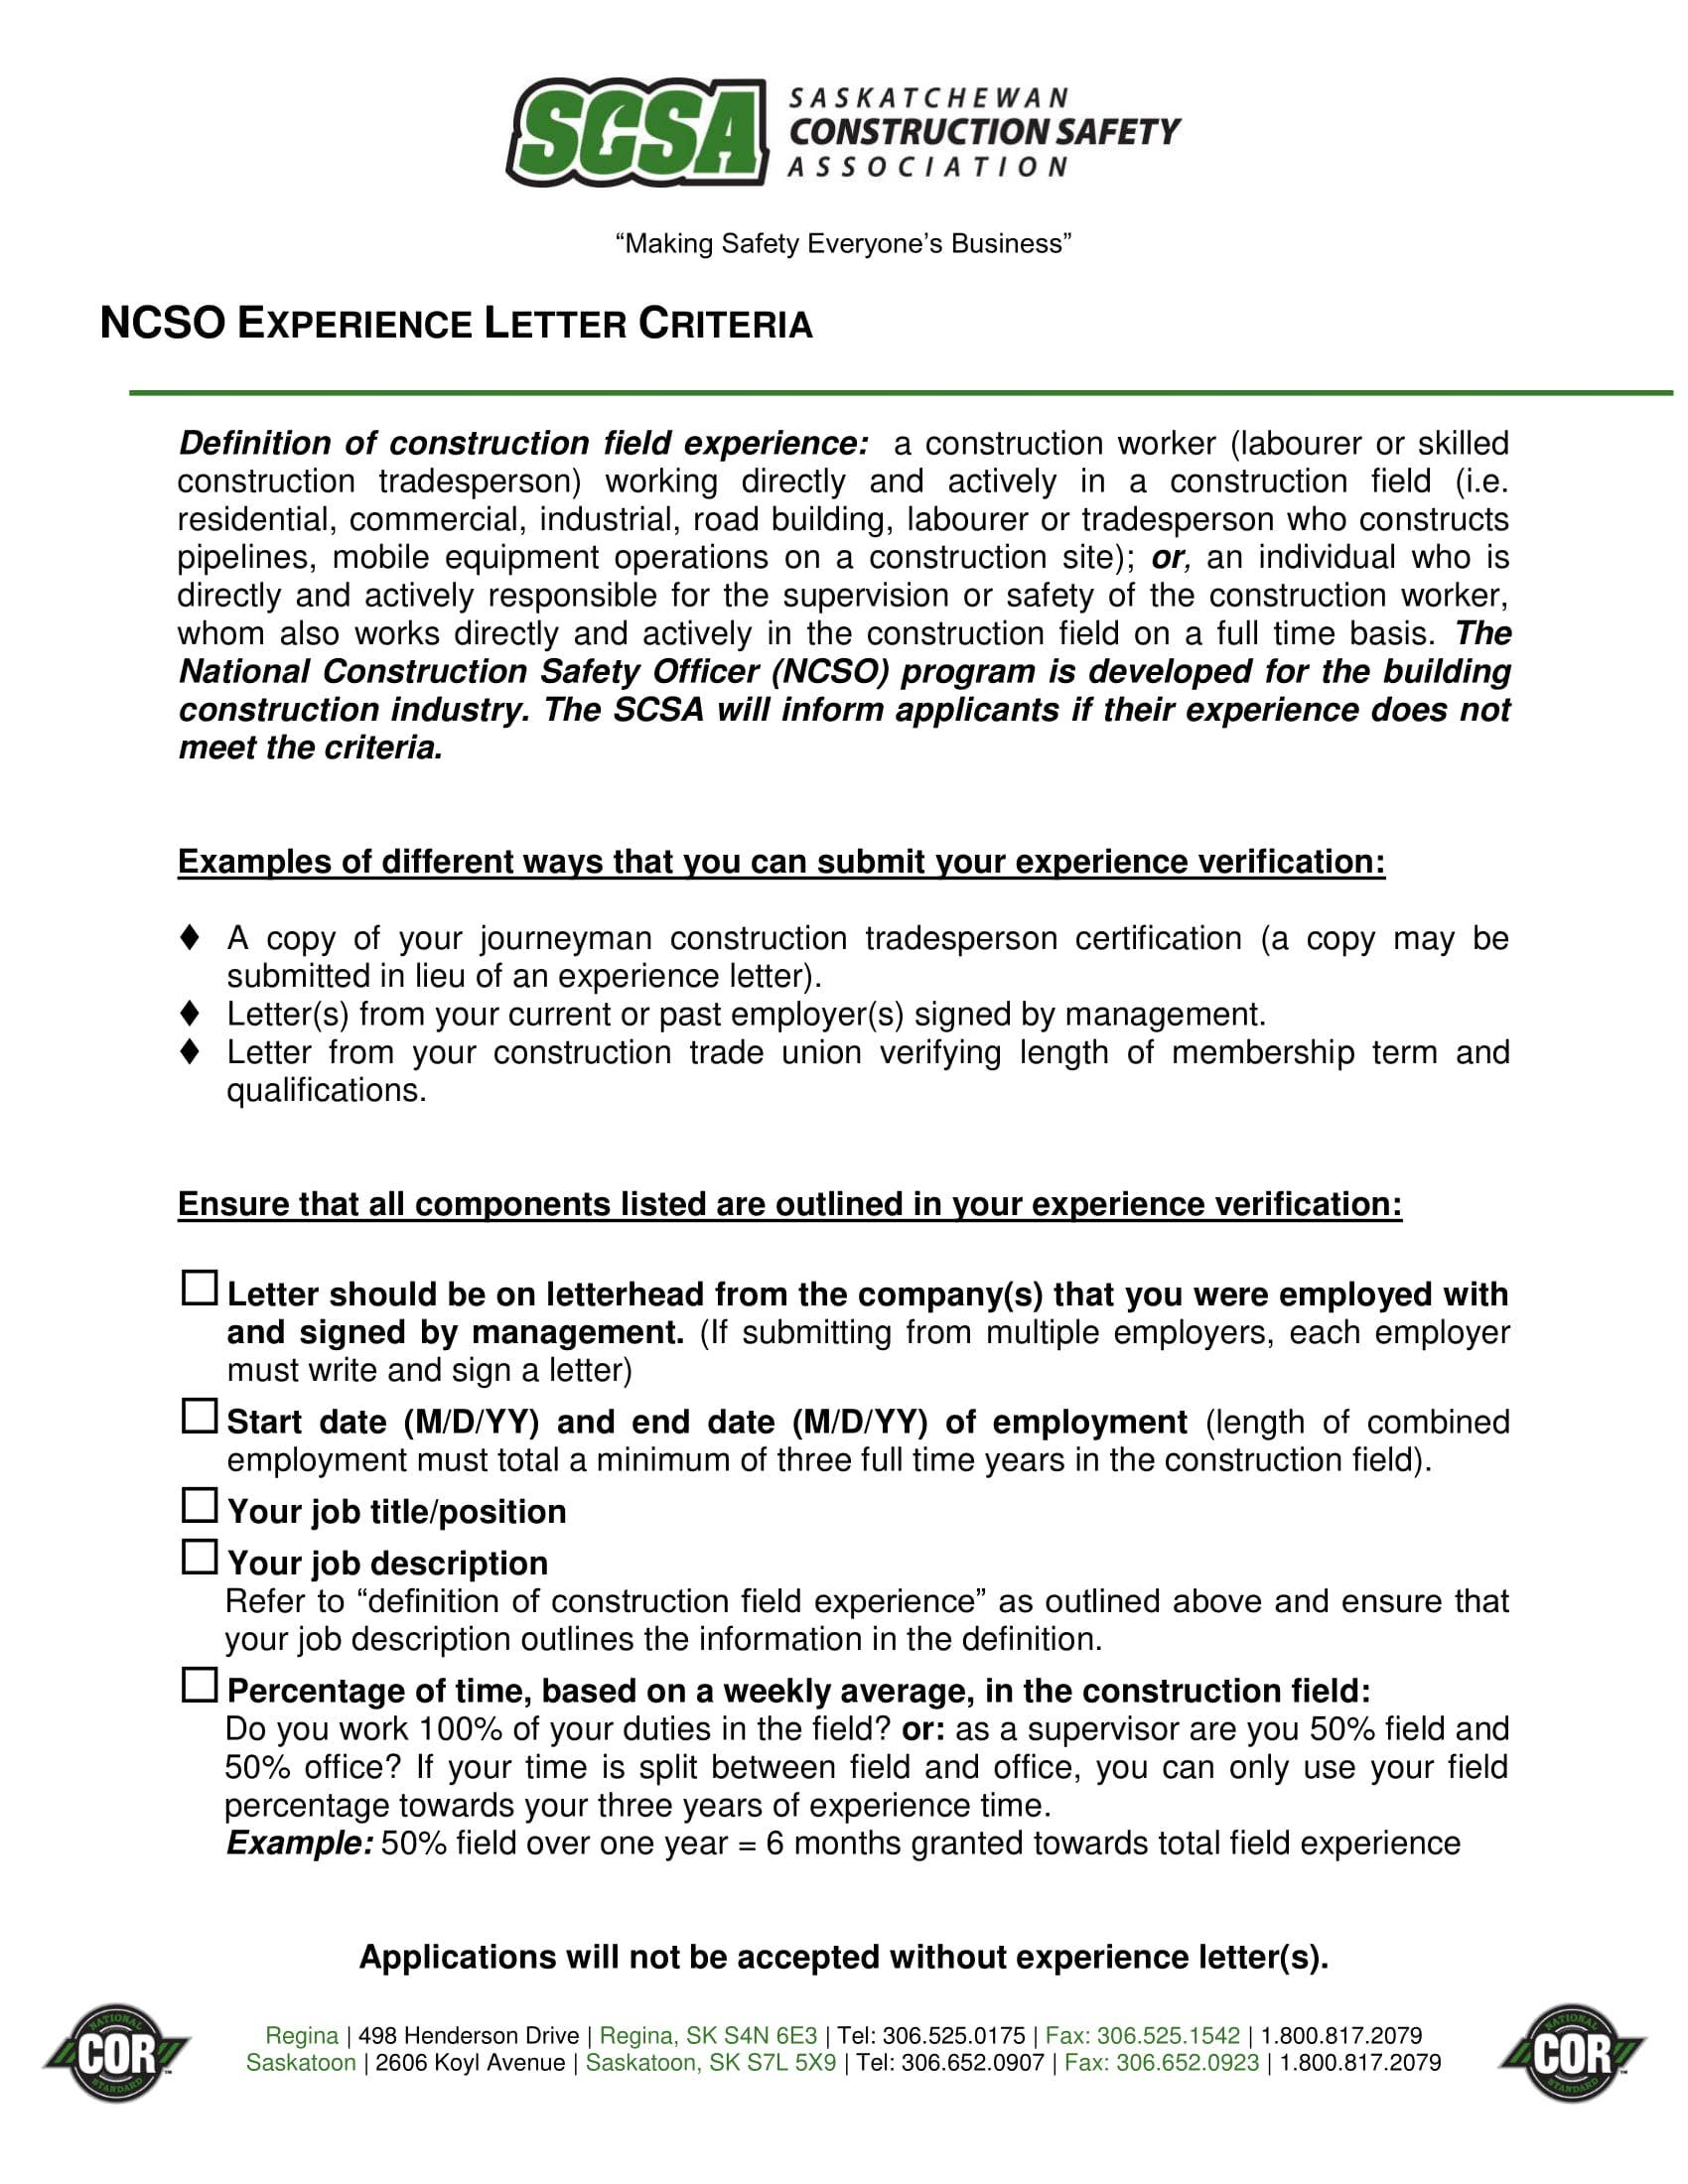 18 Experience Letter Templates In PDF